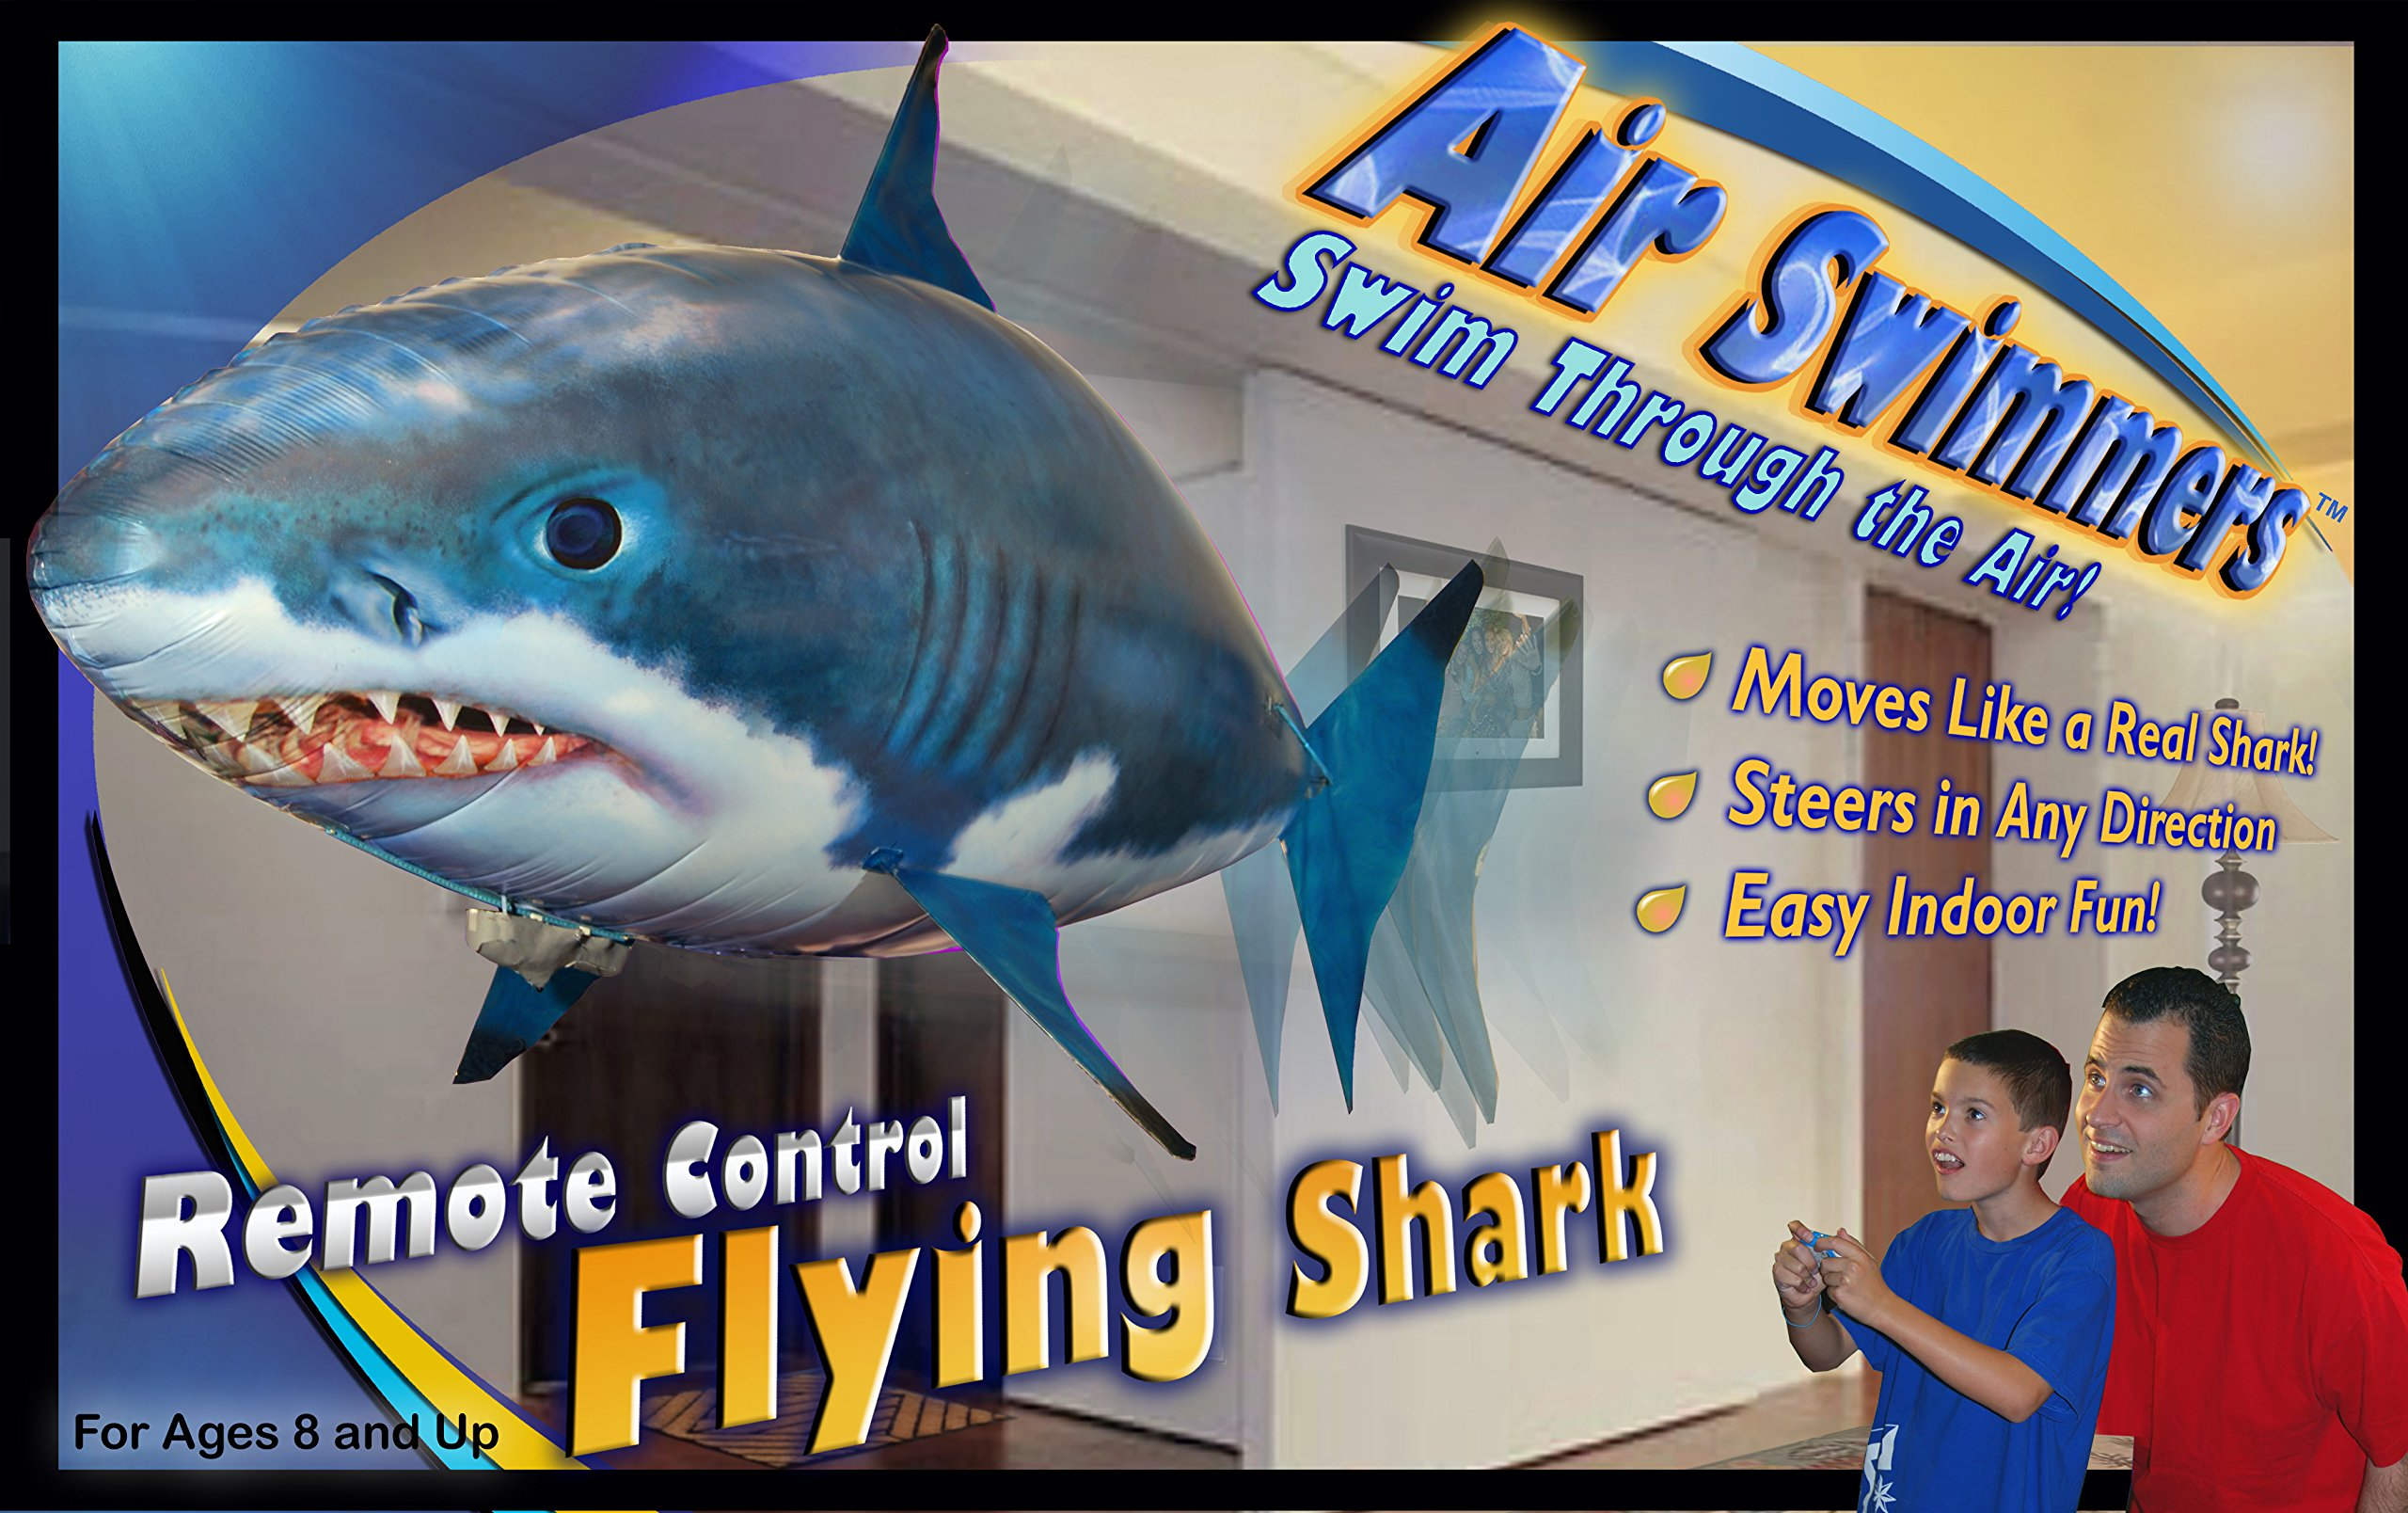 Air swimmers rc remote control flying shark toy kids for Remote control flying fish